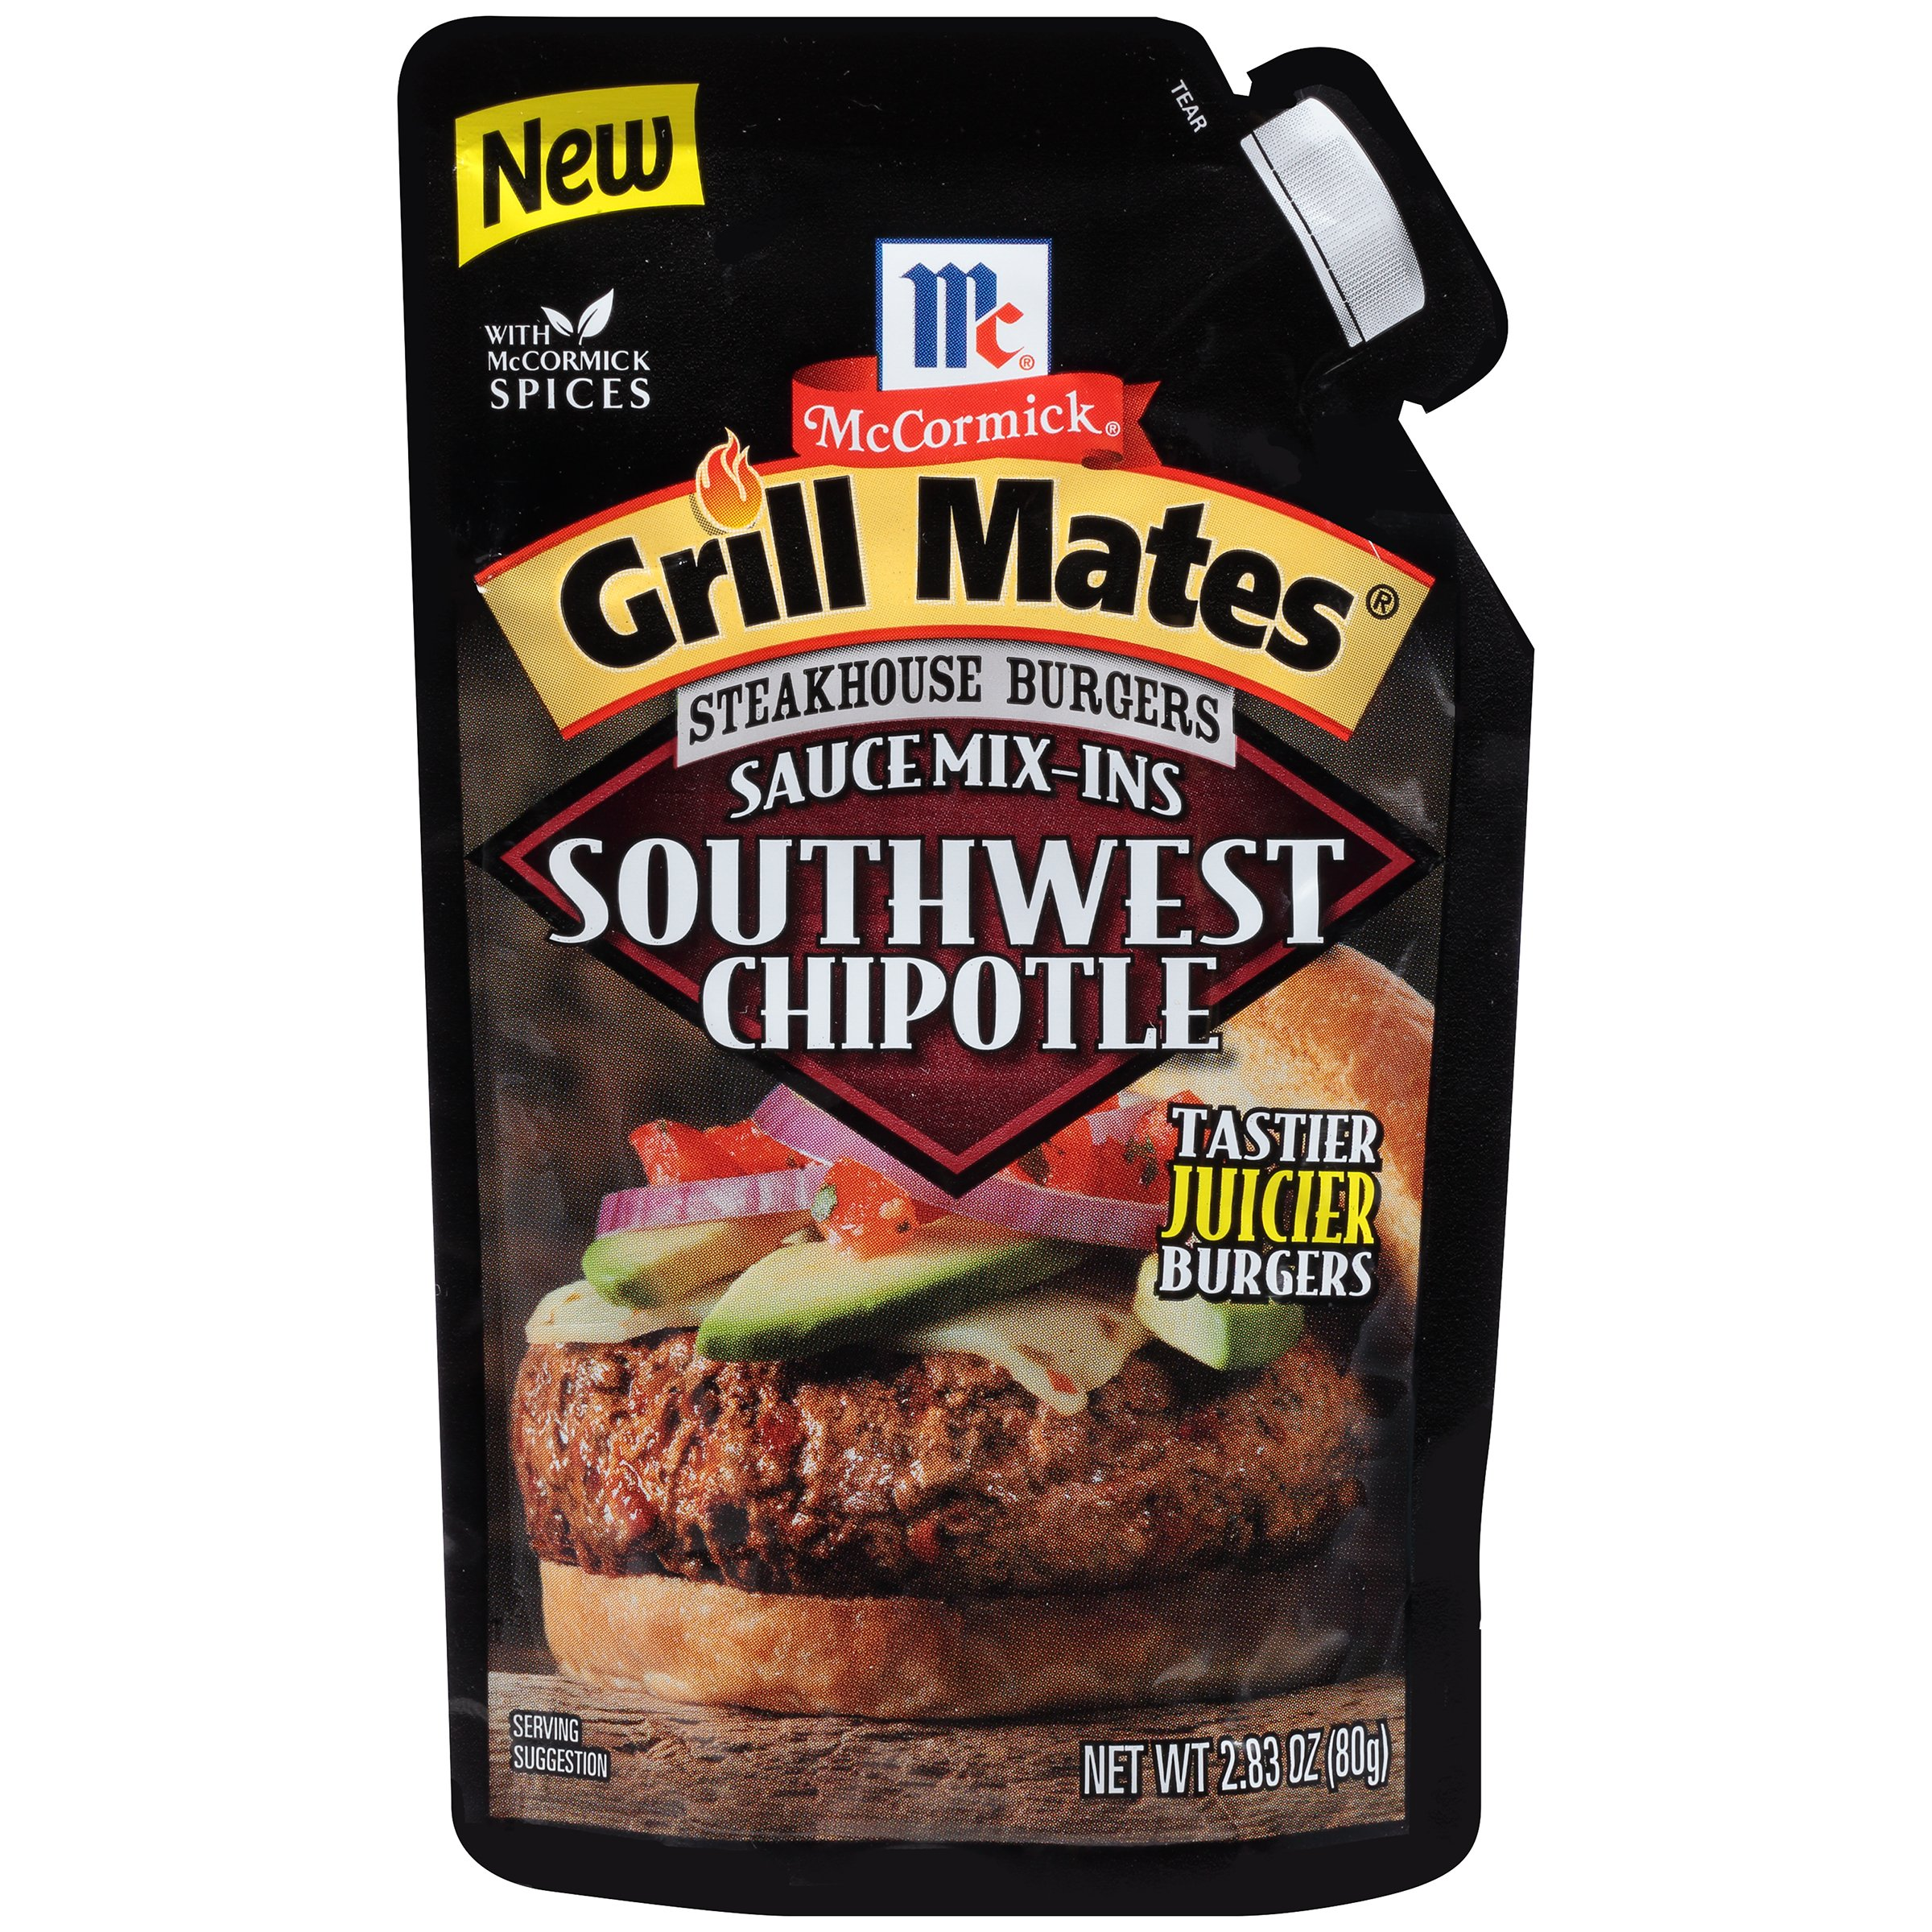 McCormick Grill Mates Steakhouse Burgers Sauce Mix Ins Southwest Chipotle, 2.83 Ounce (Pack of 6)